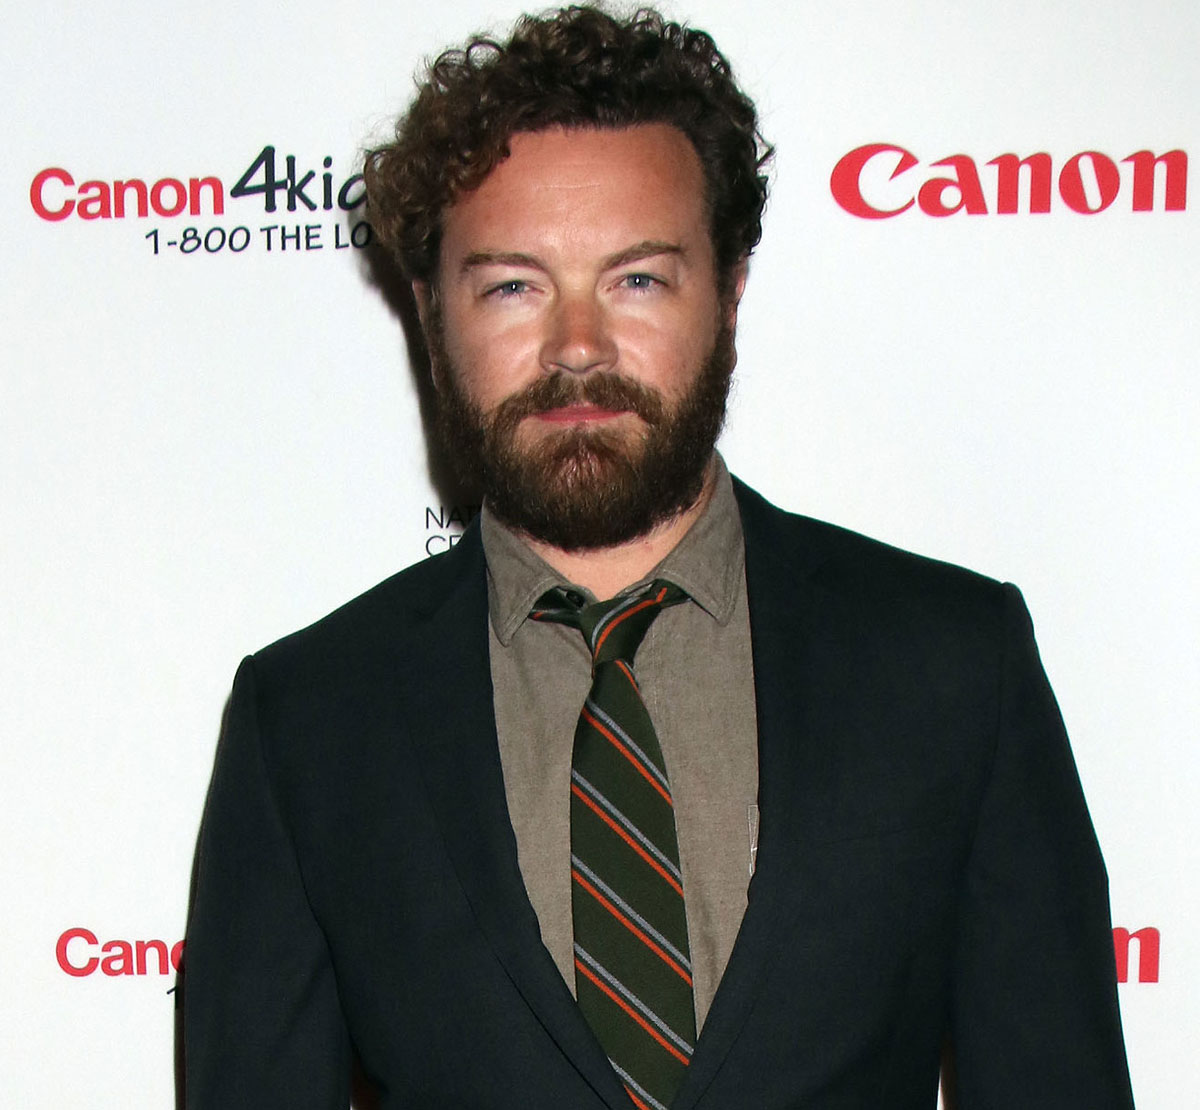 Court Rules Danny Masterson's Rape Accusers Must Use Church Judges To Resolve Accusations